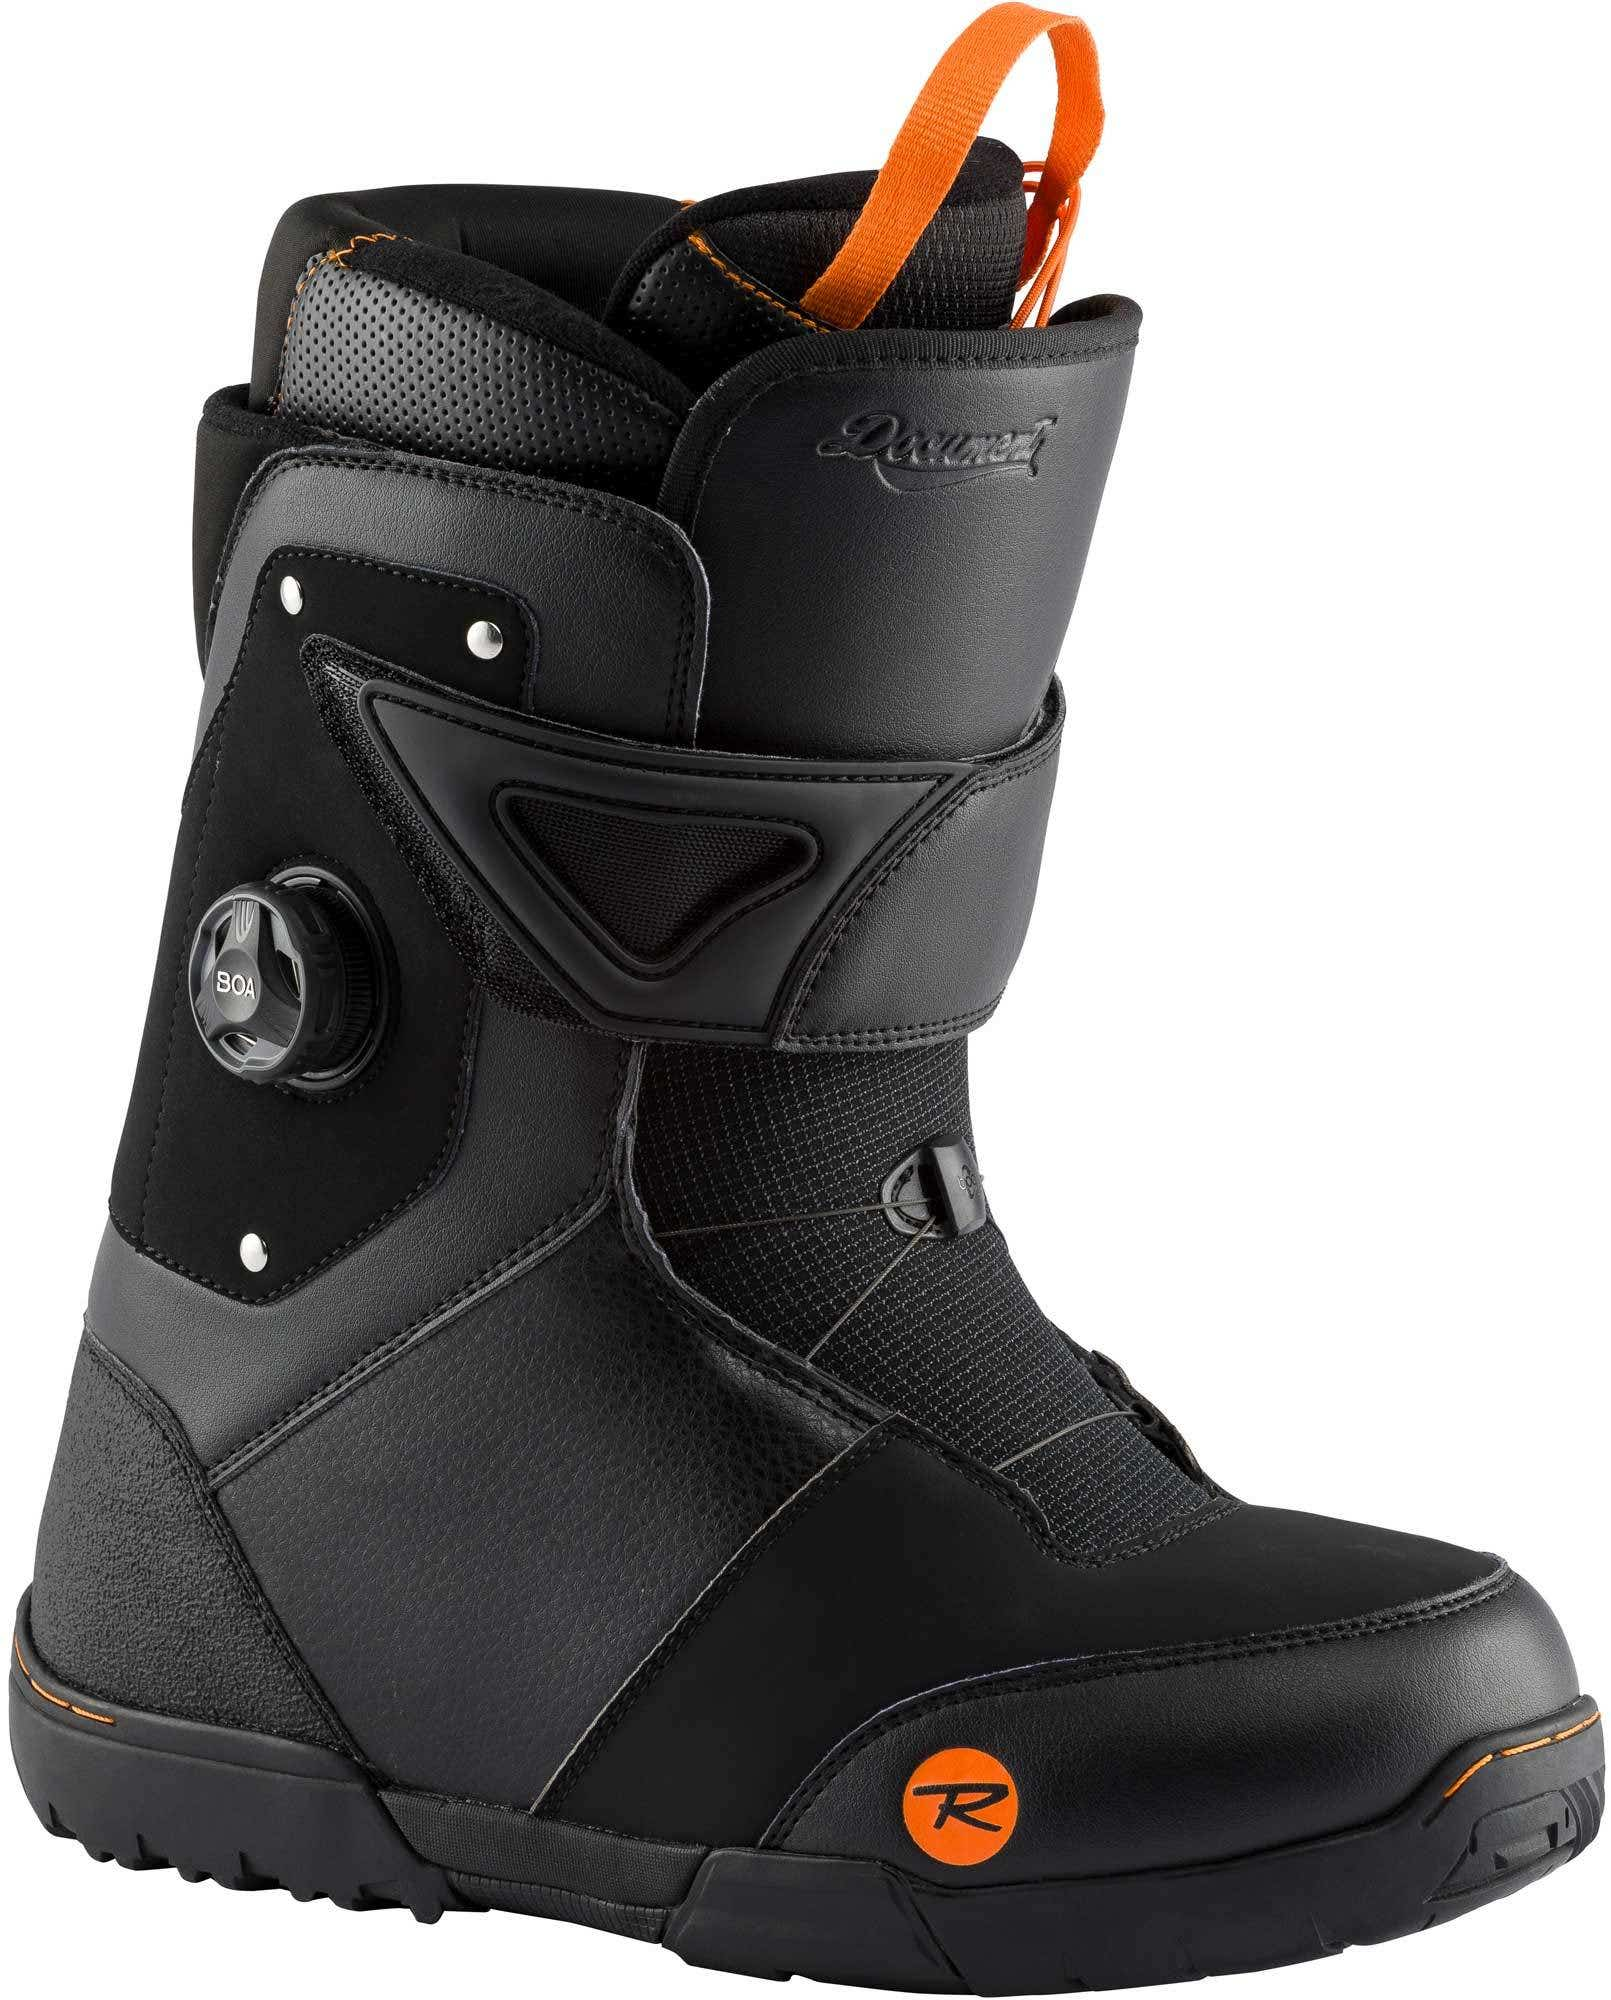 Image of Men's All Mountain Snowboard Boots Document